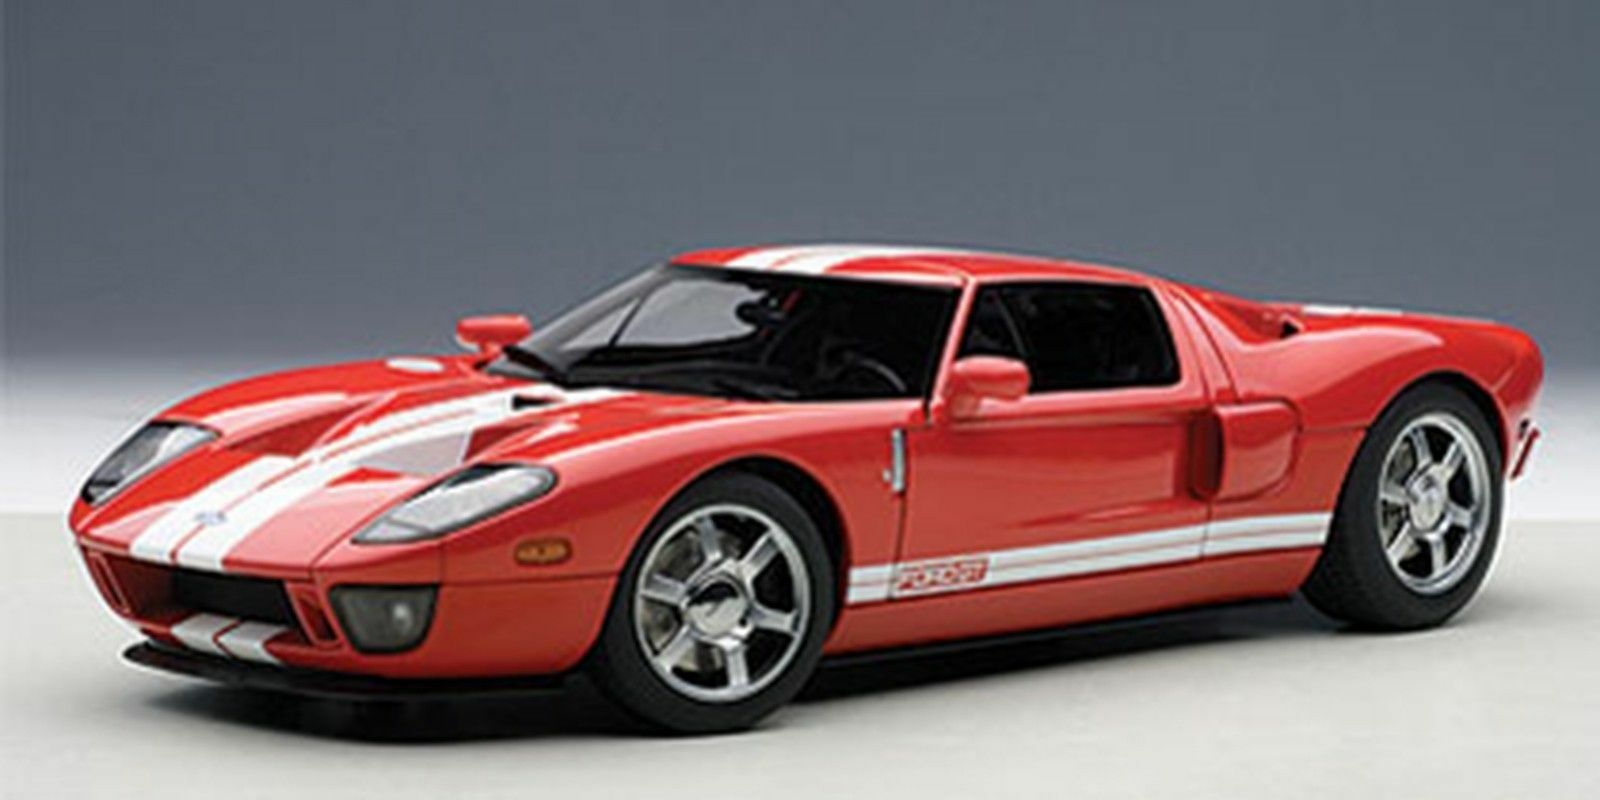 Autoart 2004 FORD GT rosso bianca STRIPES 1 18 New  Rare  Last One